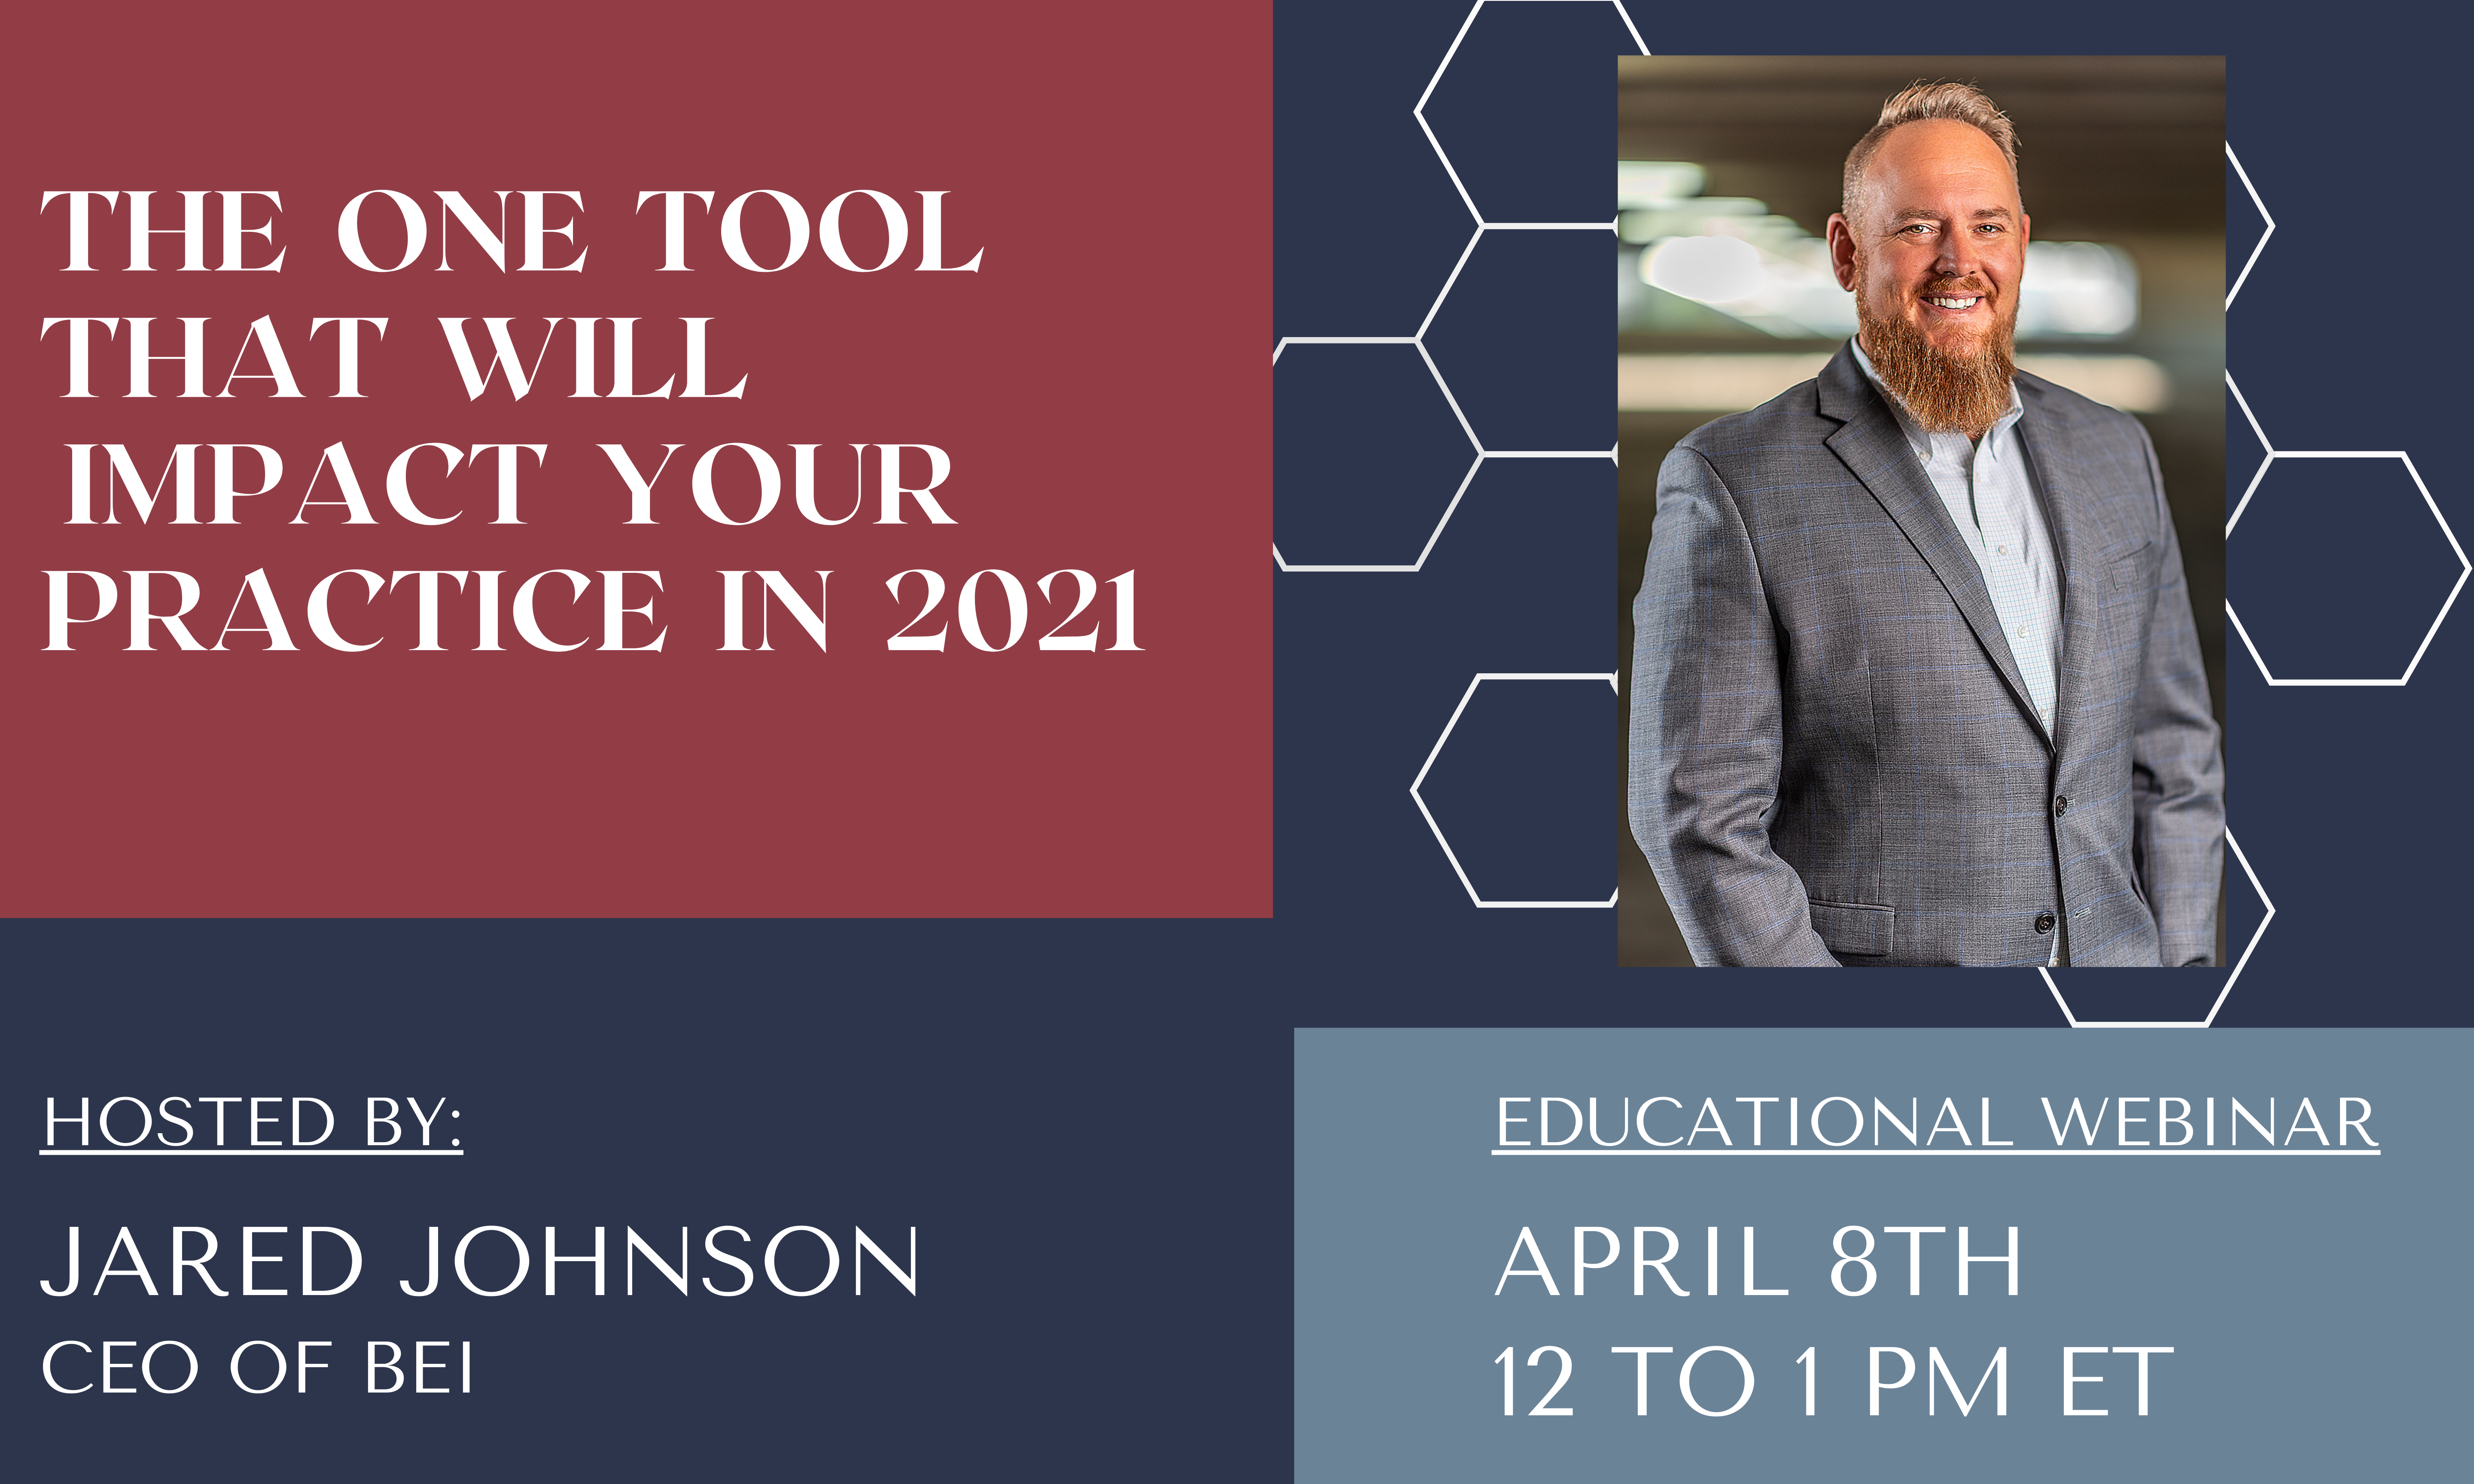 The One Tool That Will Impact Your Practice in 2021 Webinar Image